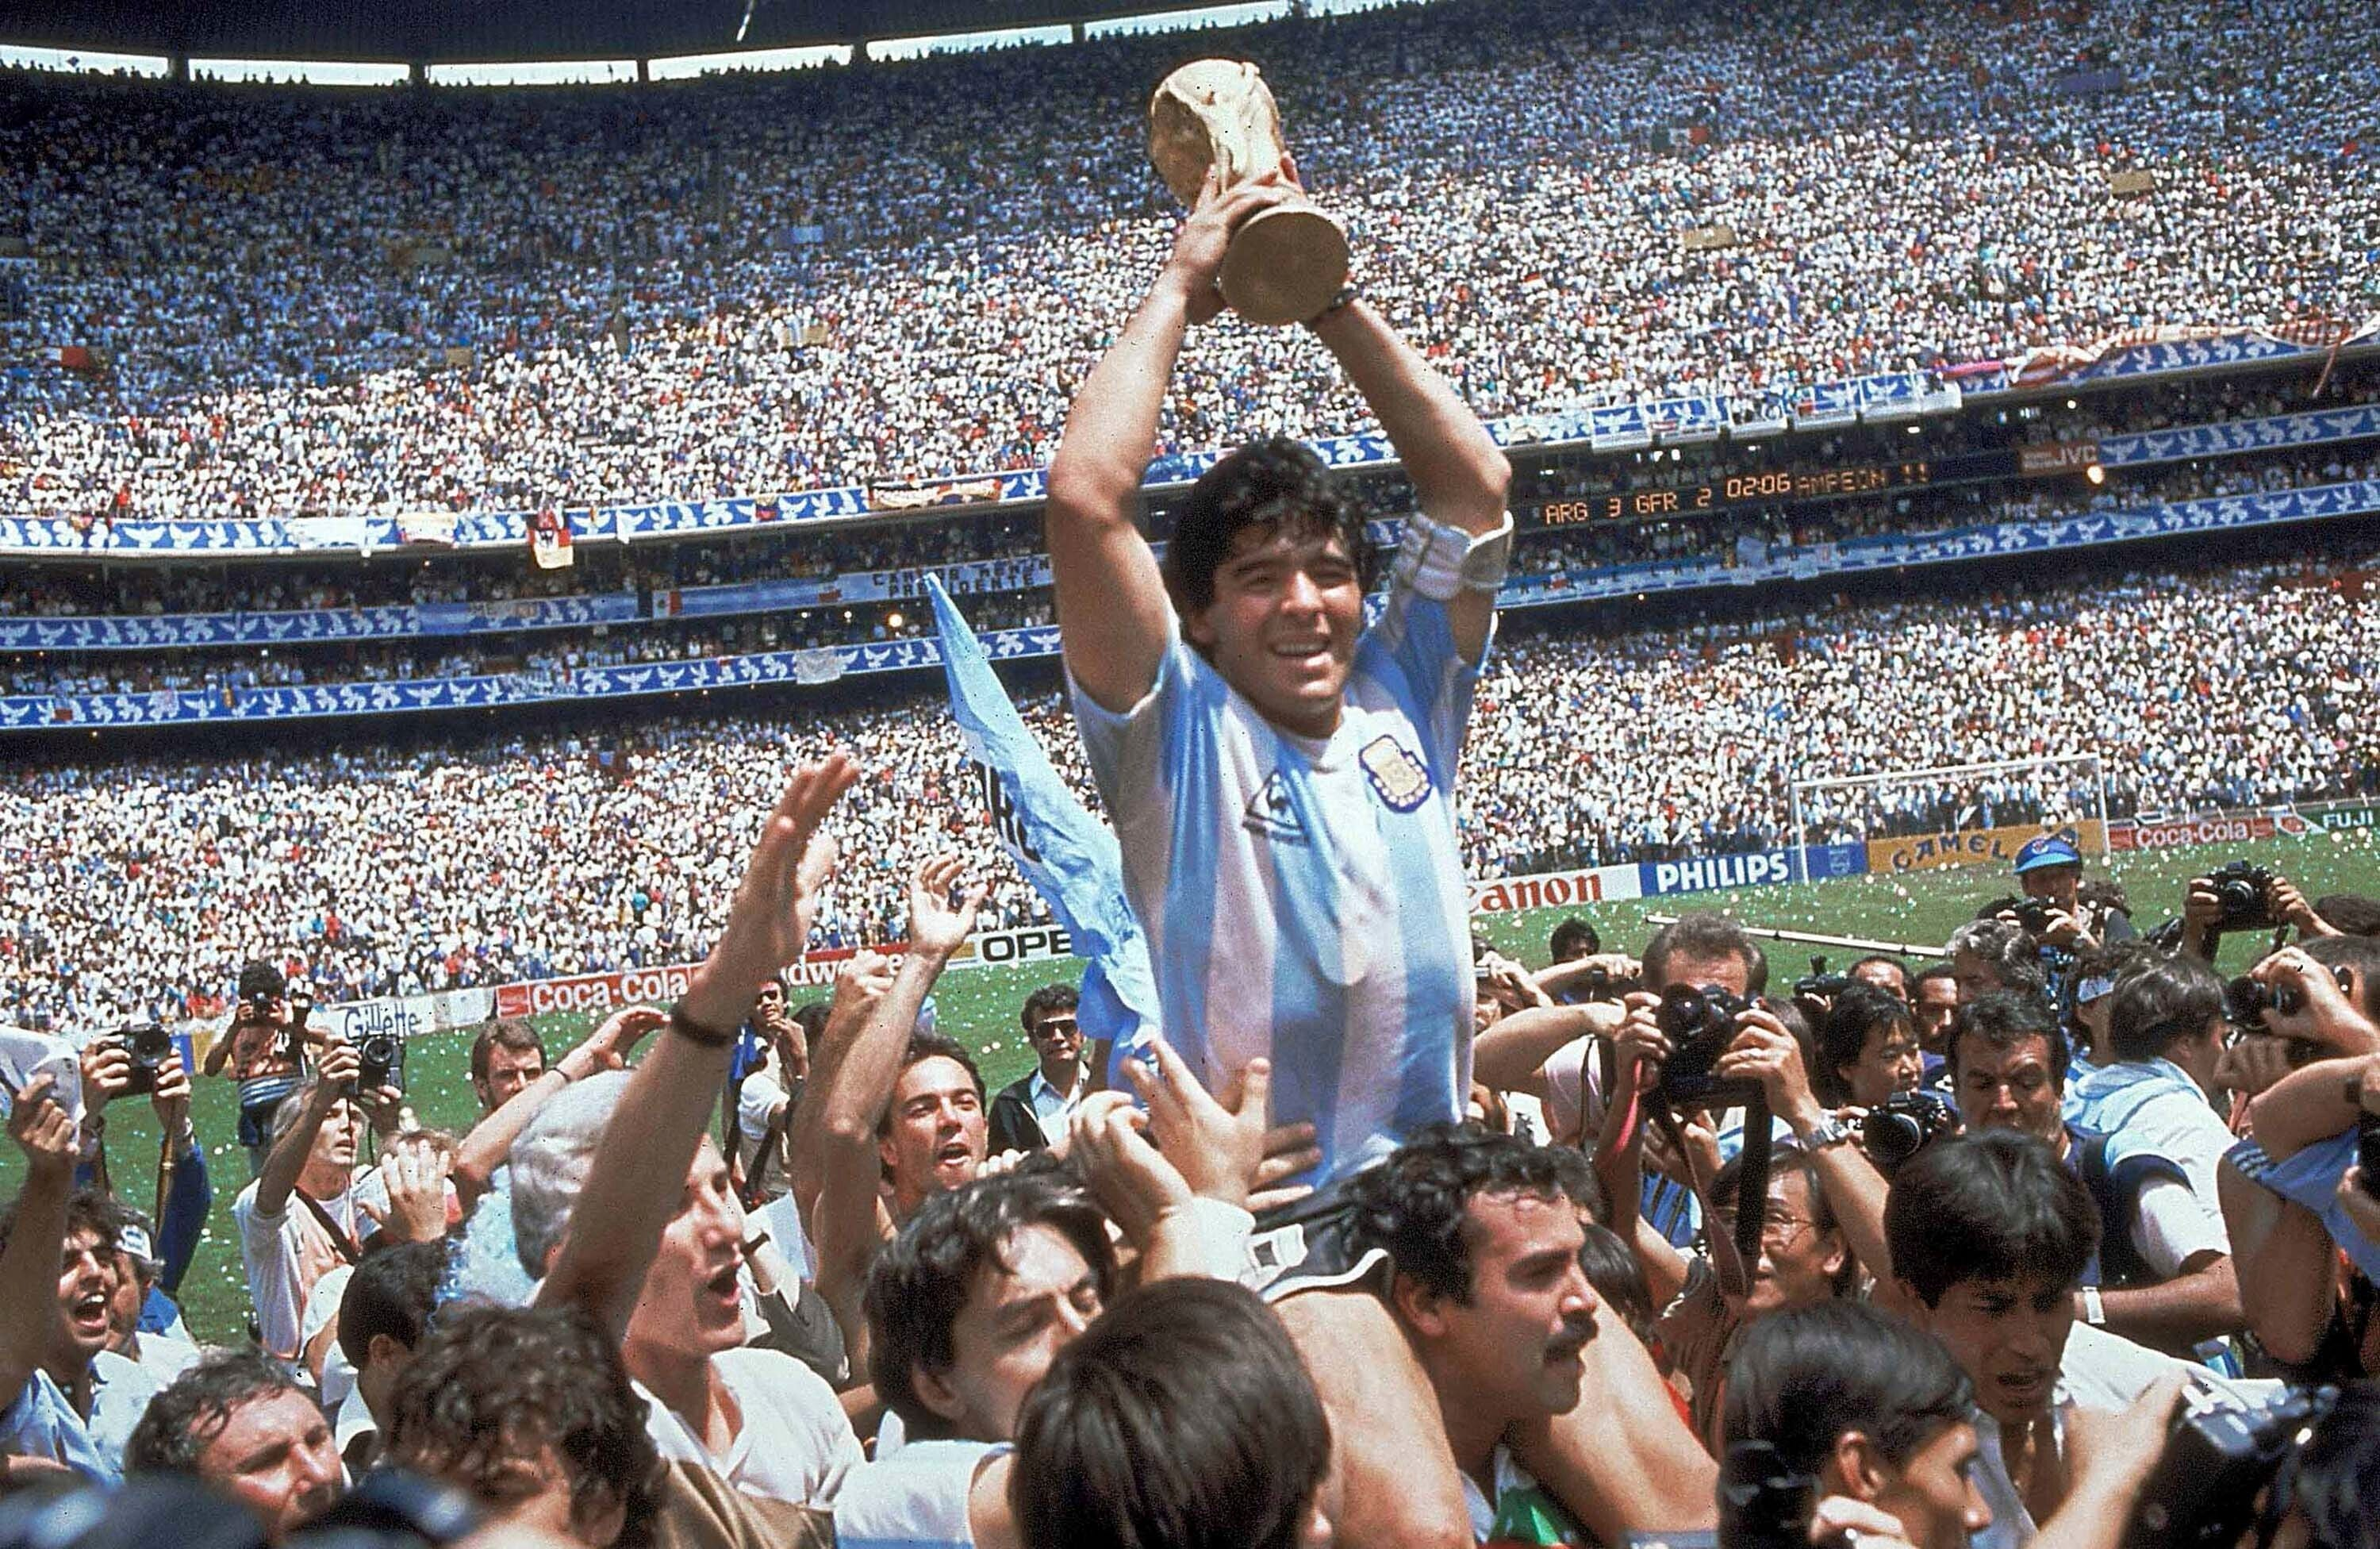 Diego Maradona, soccer legend who led Argentina to 1986 World Cup title, dies at 60